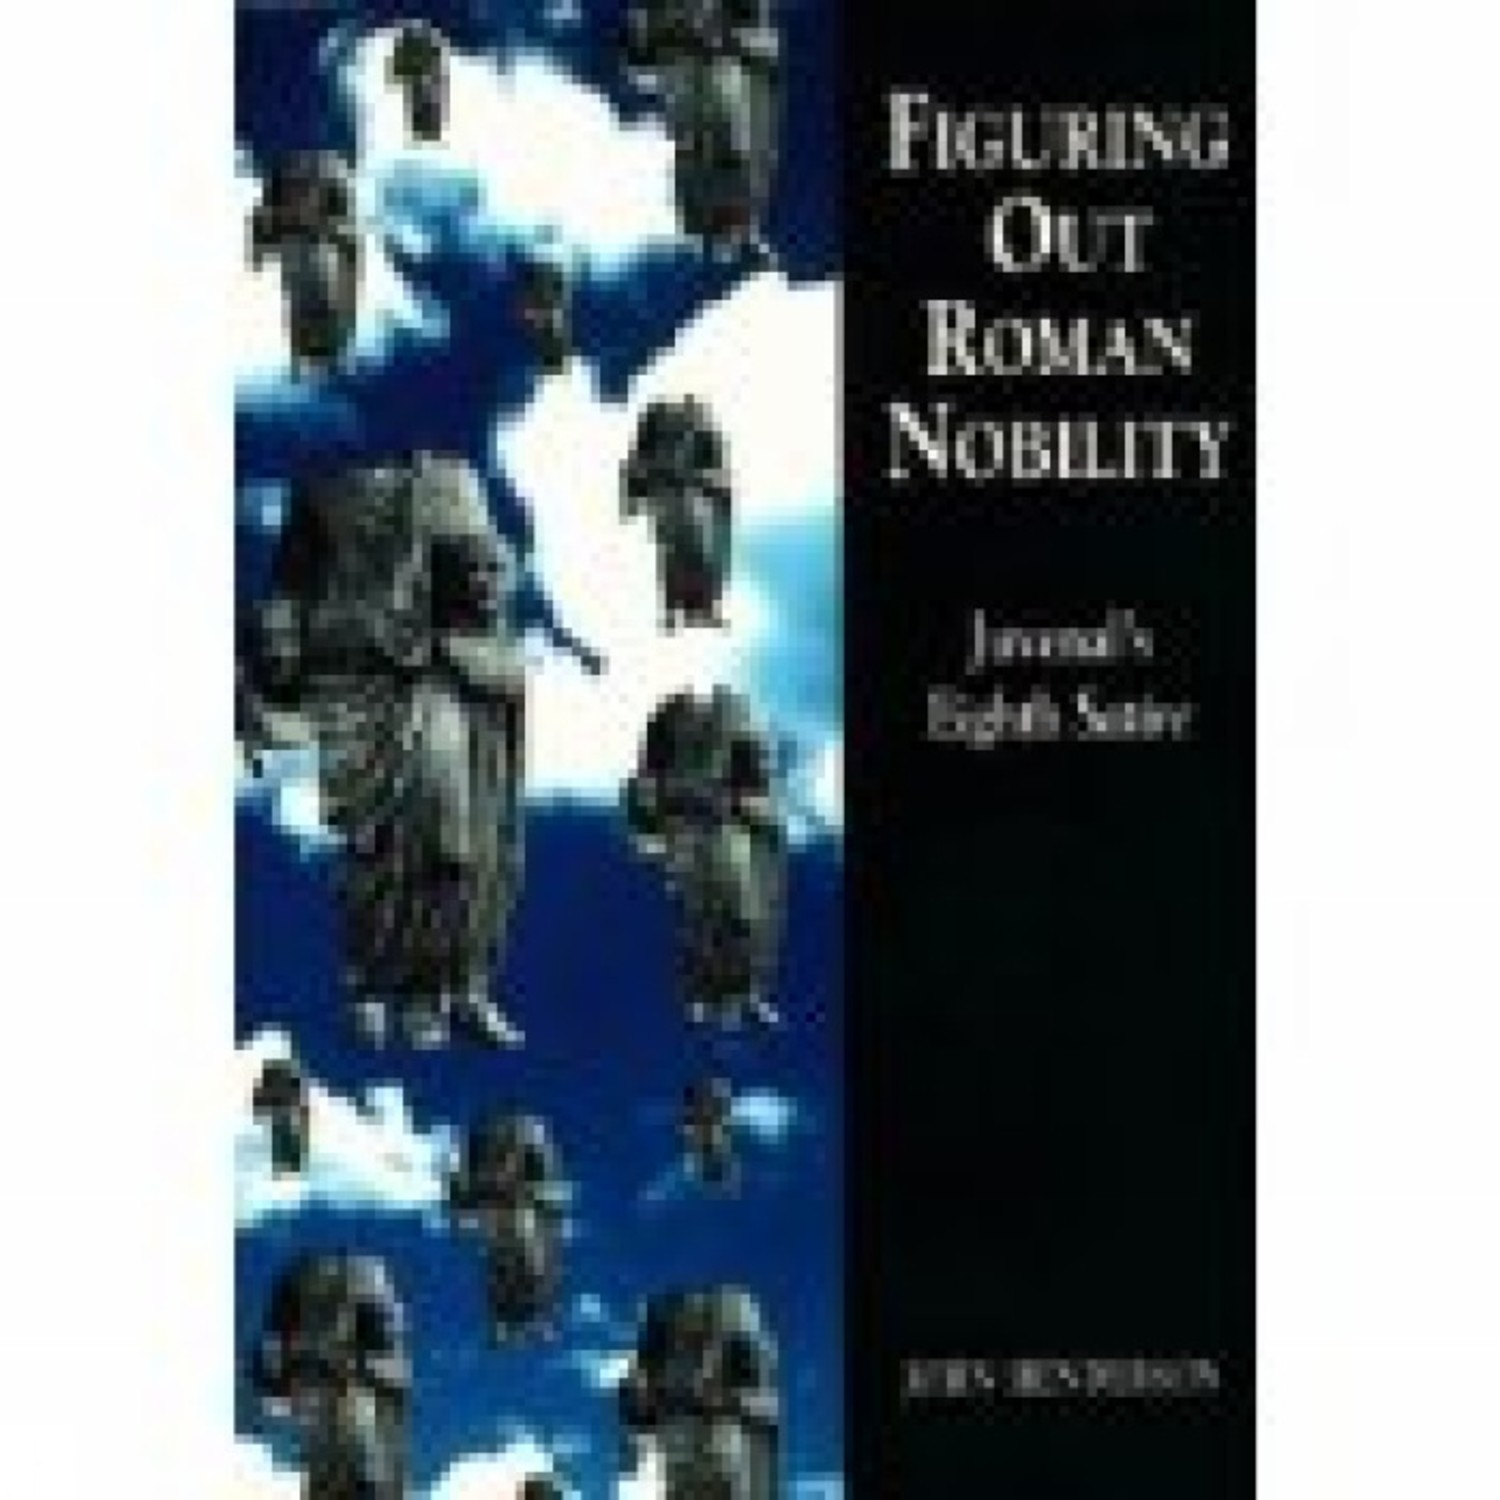 Figuring Out Roman Nobility